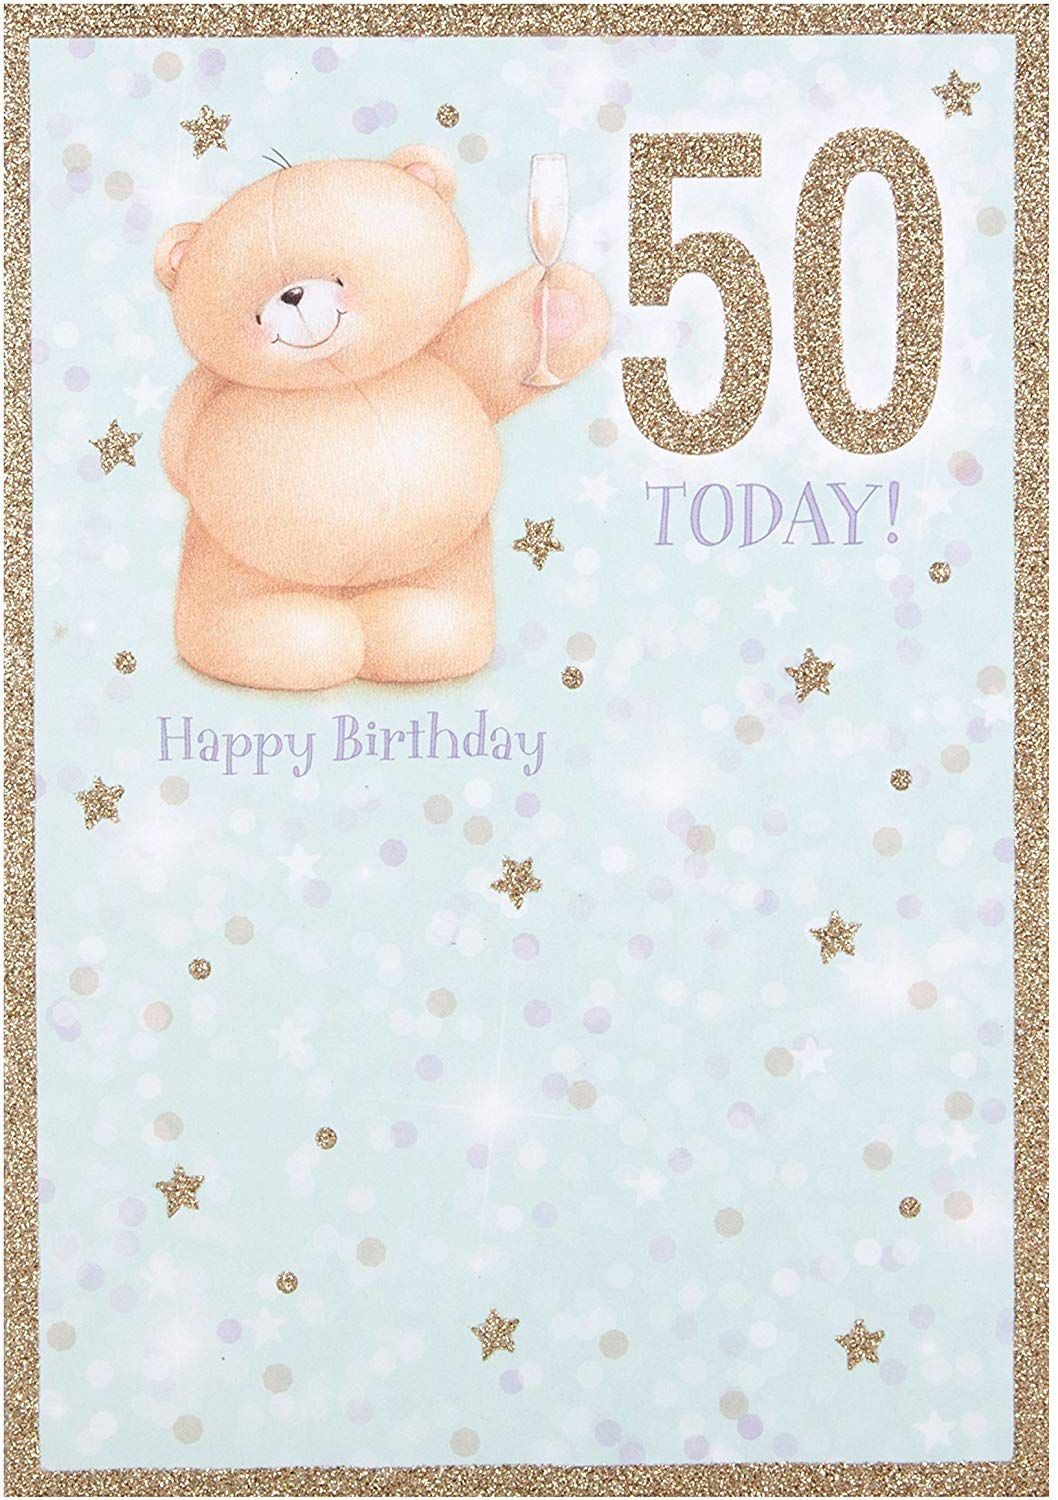 Hallmark Forever Friends 50th Birthday Card You Re Fabulous Medium Old Model Amazon Co Uk Welc Forever Friends Bear Friends Forever 50th Birthday Cards